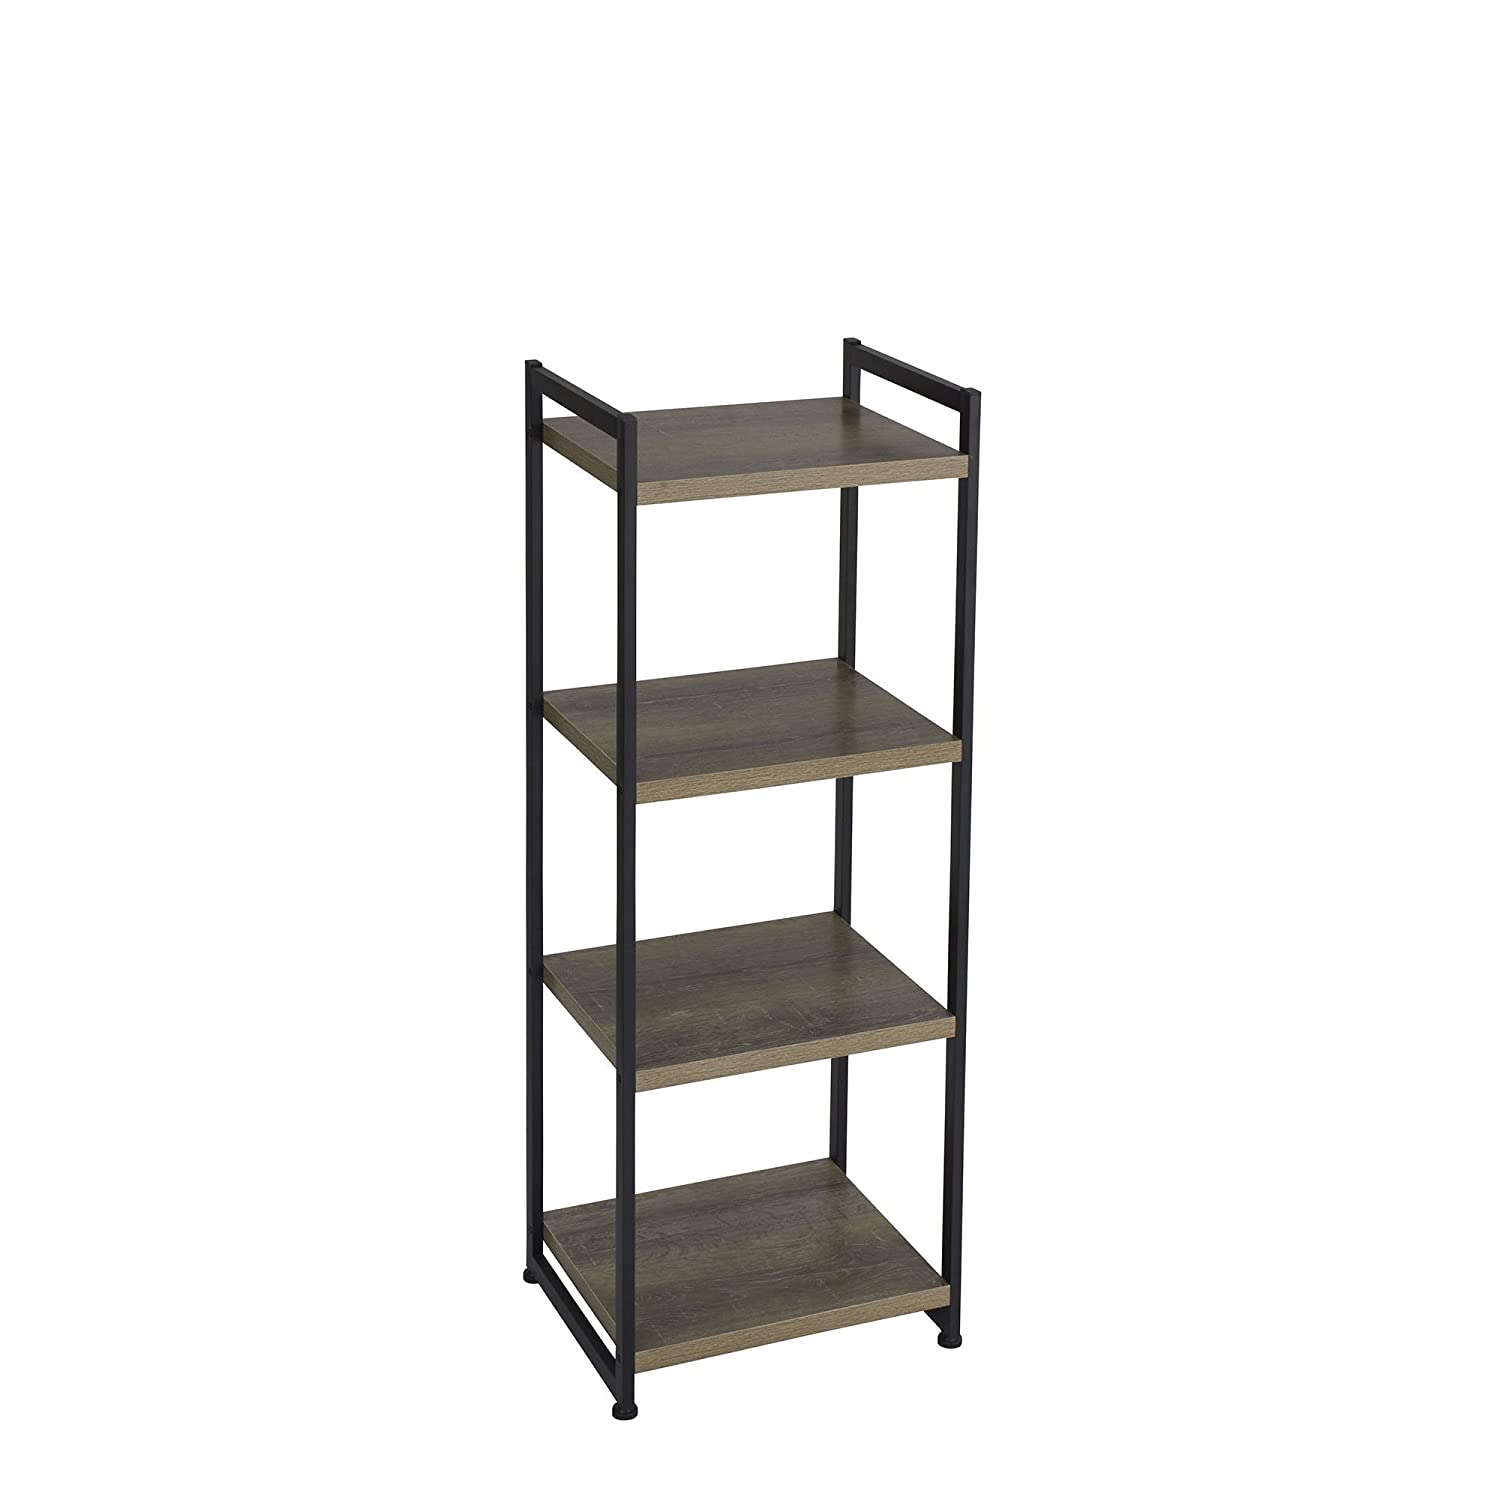 Household Essentials 4 Tier Storage Tower Shelf with Metal, Grey Shelves – Black Frame, Ashwood